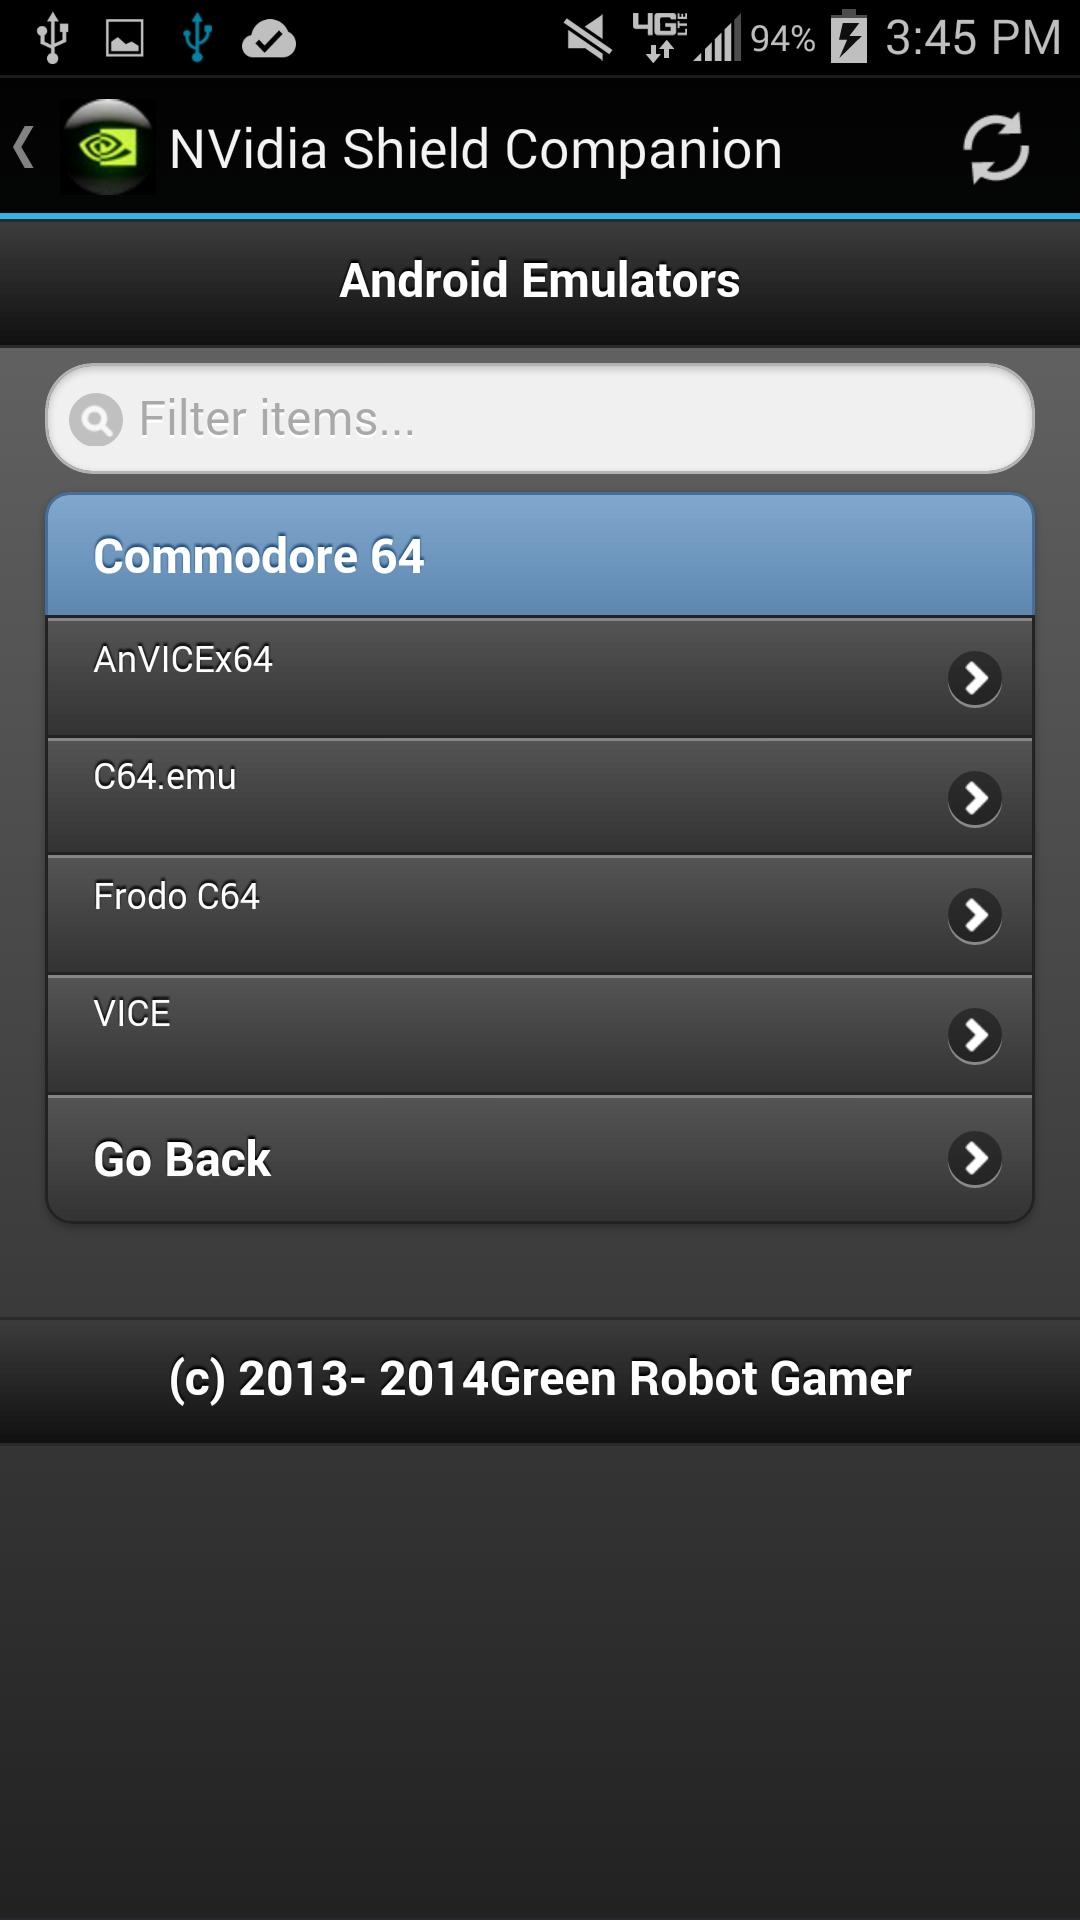 NVidia Shield Companion for Android - APK Download